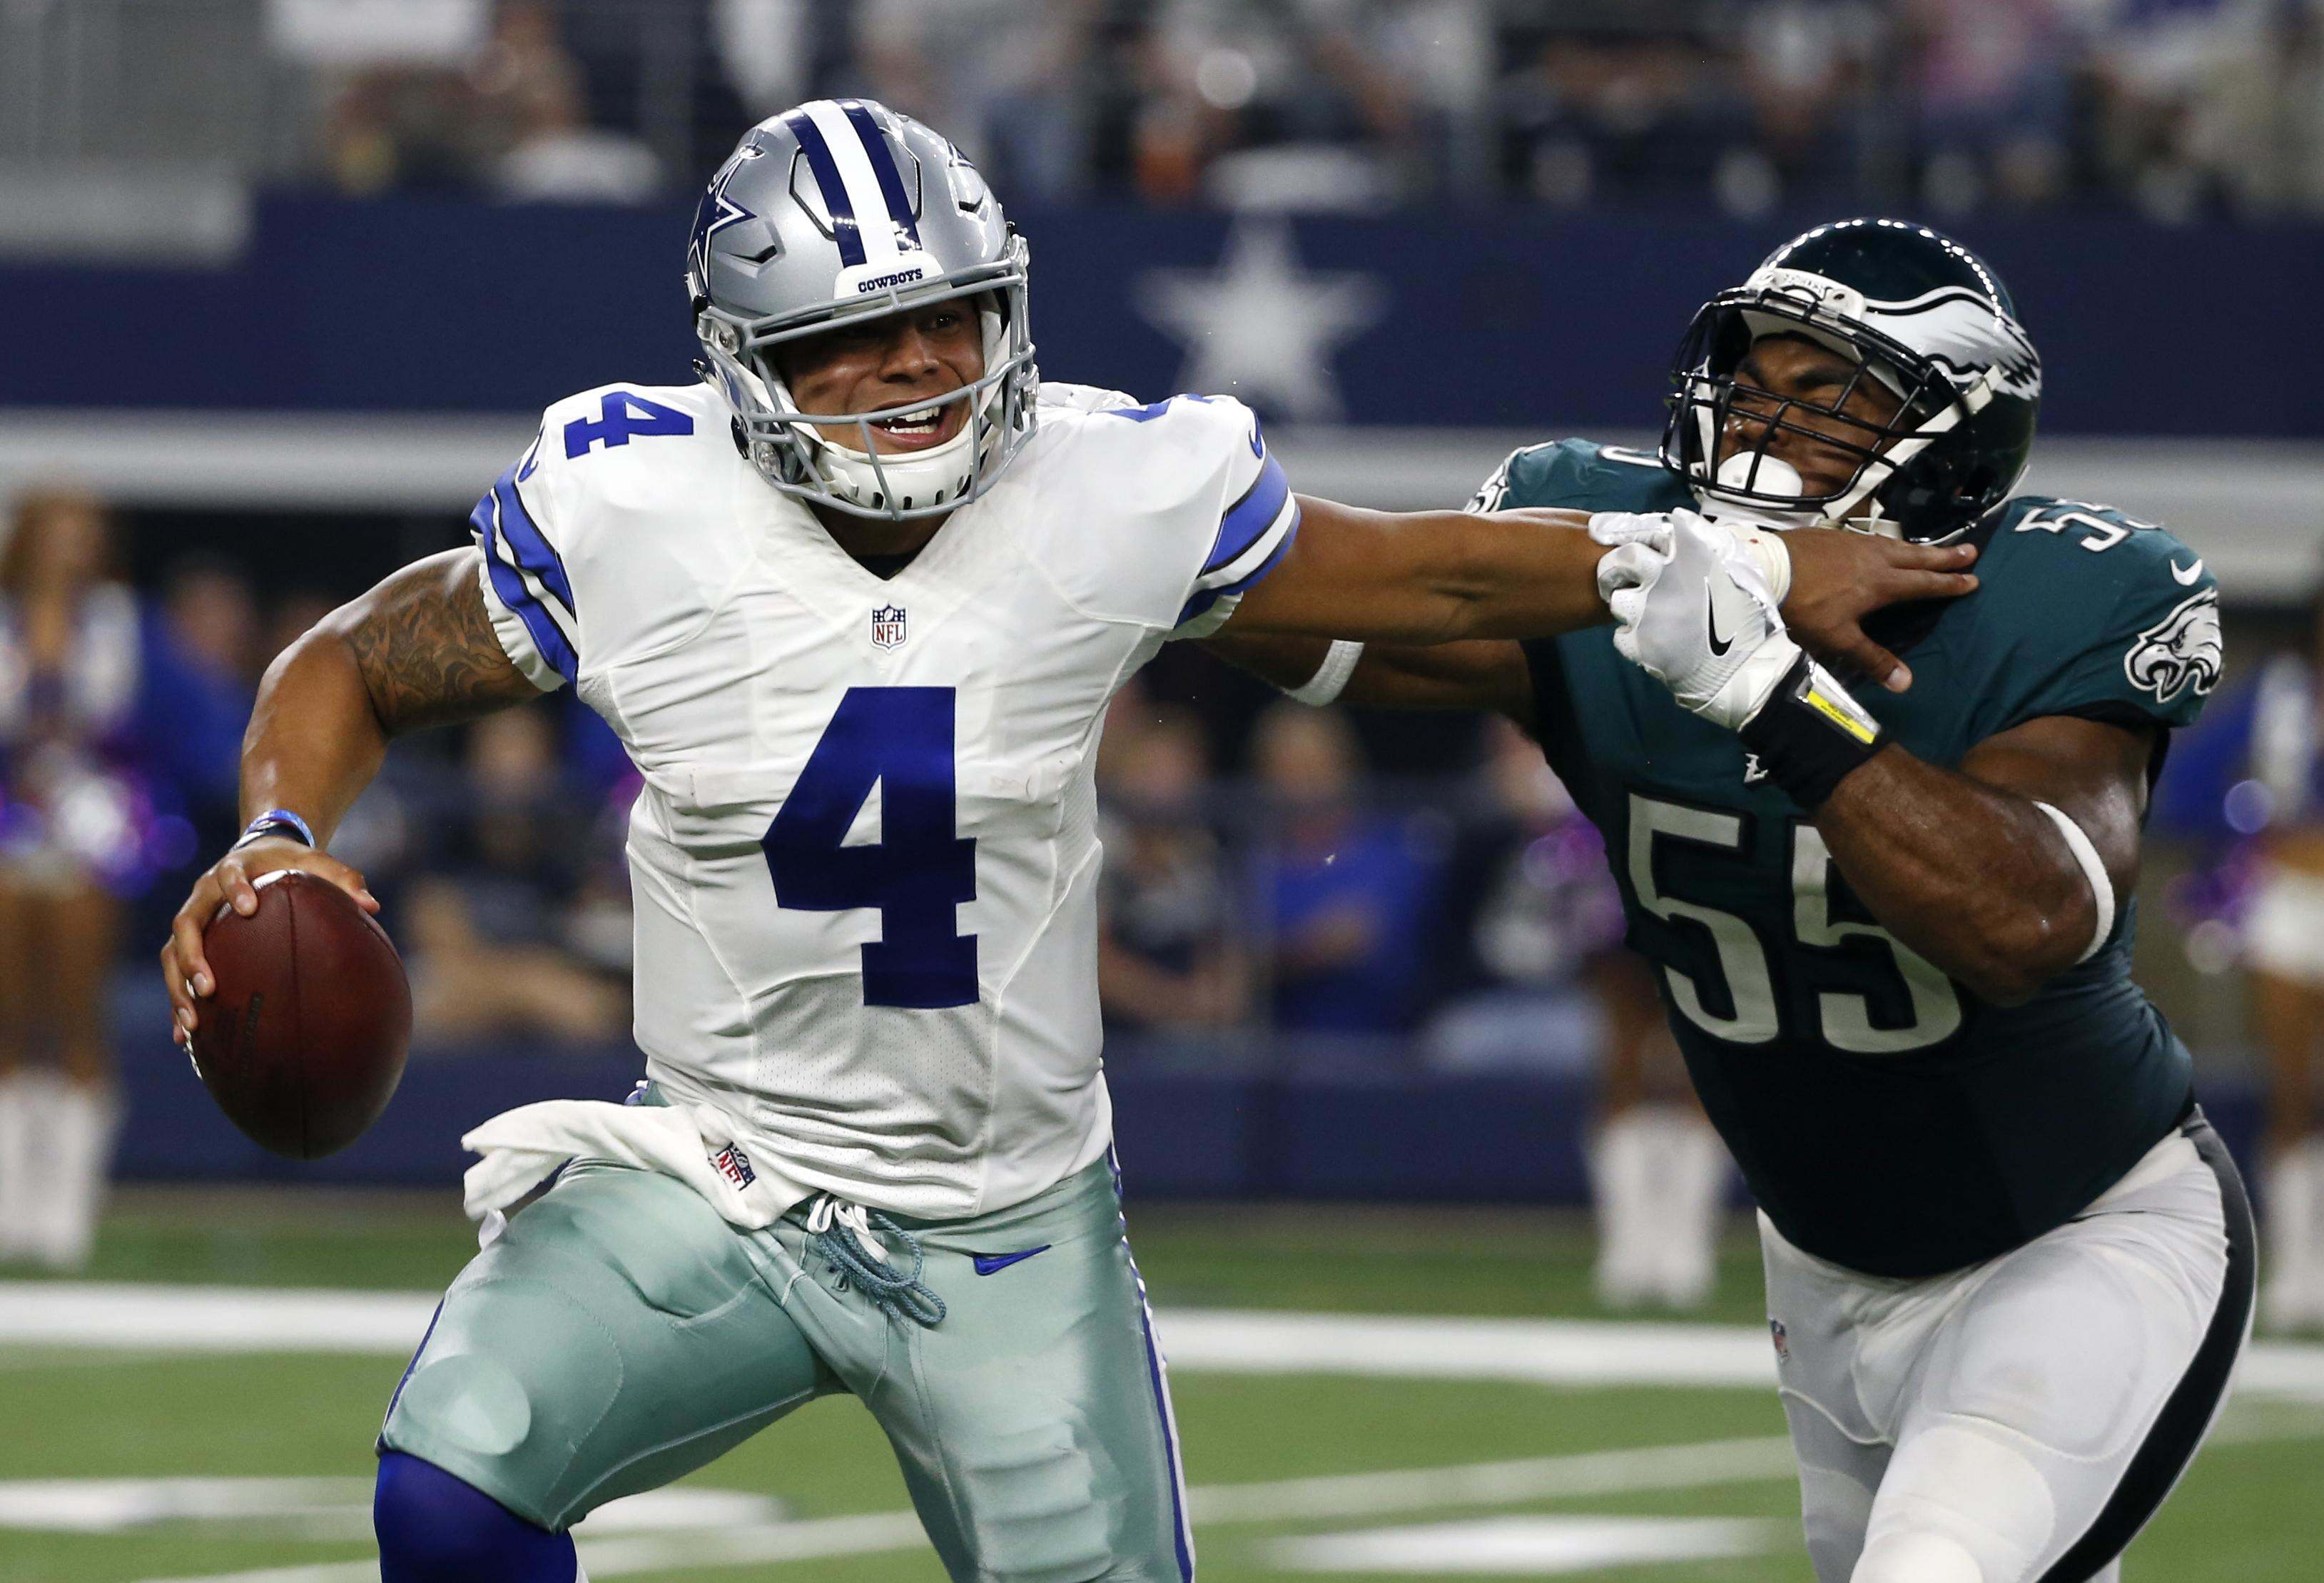 Sean-martin_player-news_dak-prescott-weighs-in-on-cowboys-dak-friendly-offense